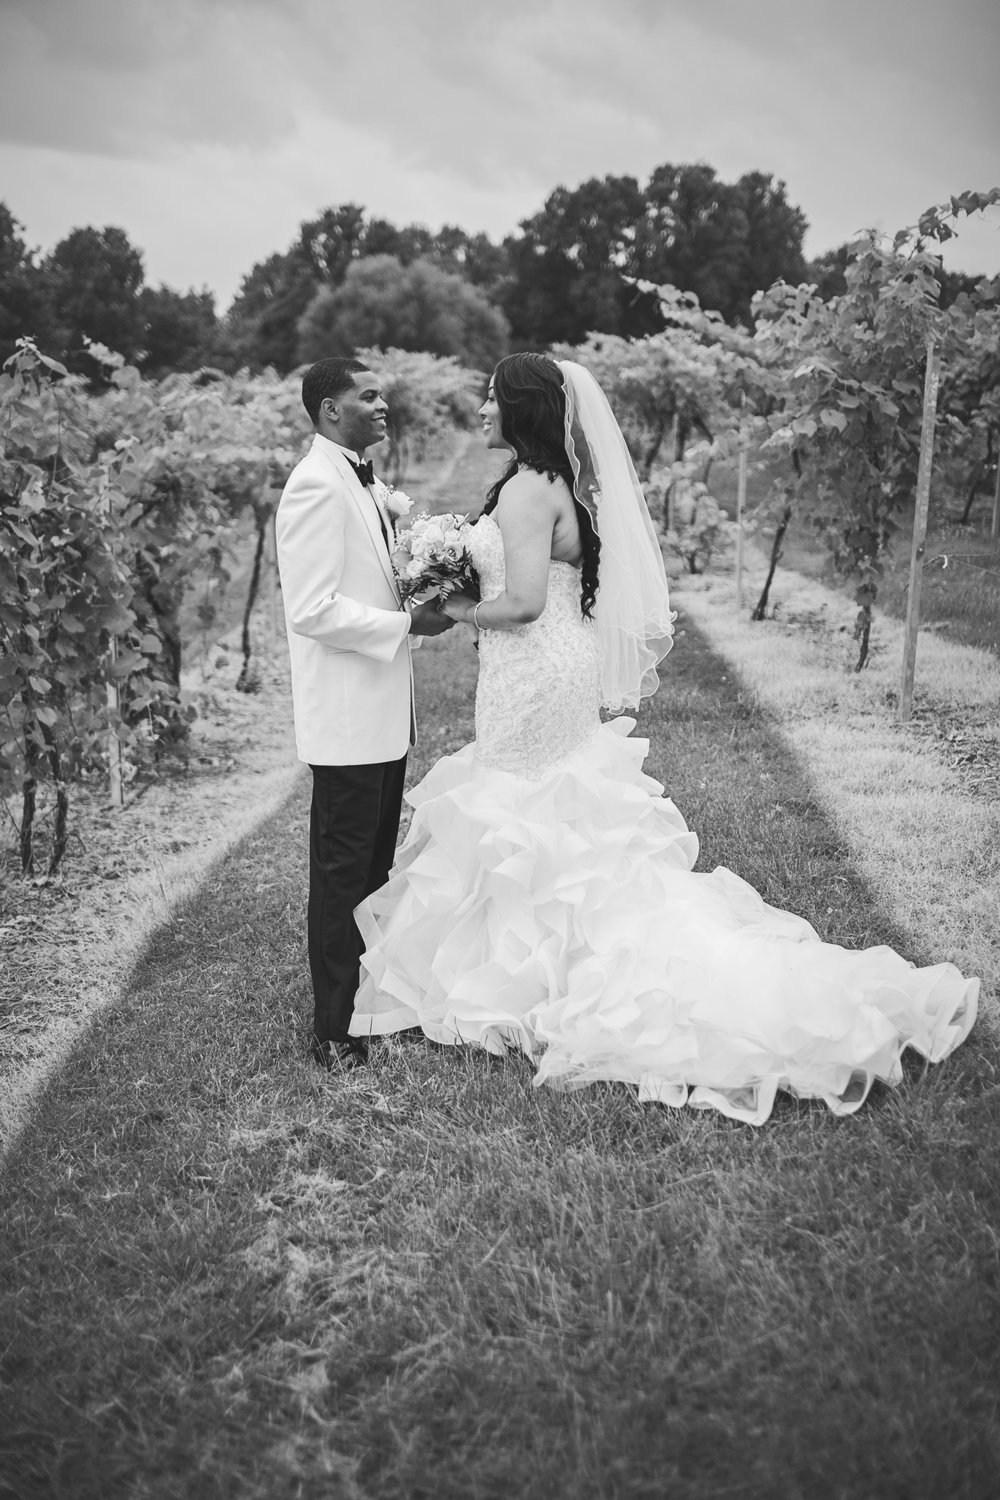 The reception was held at  Crown Winery  in Humboldt, Tennessee.I may have went a little MUCH on sharing these images from the portrait session, but they were just TOO GOOD to leave behind!